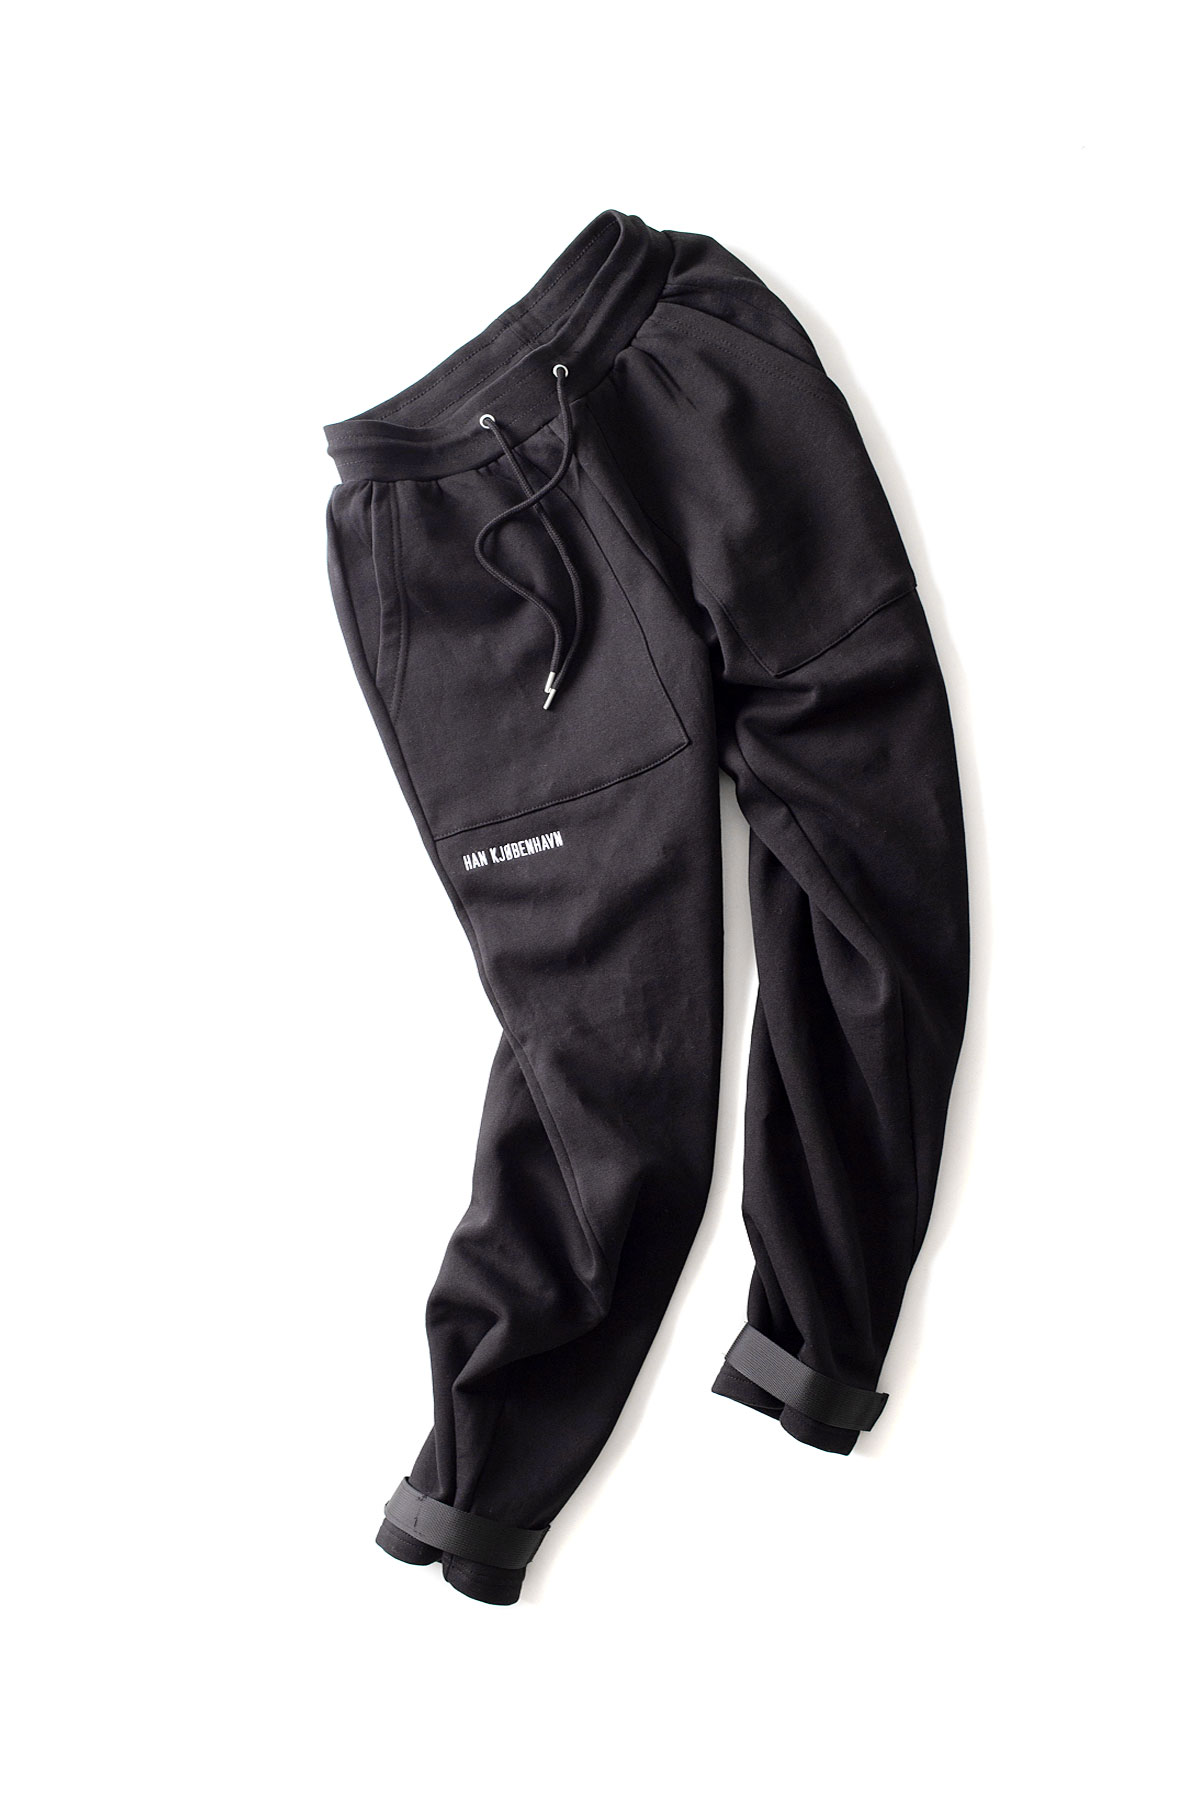 HAN KJOBENHAVN : Sweat Pants (Black Logo)